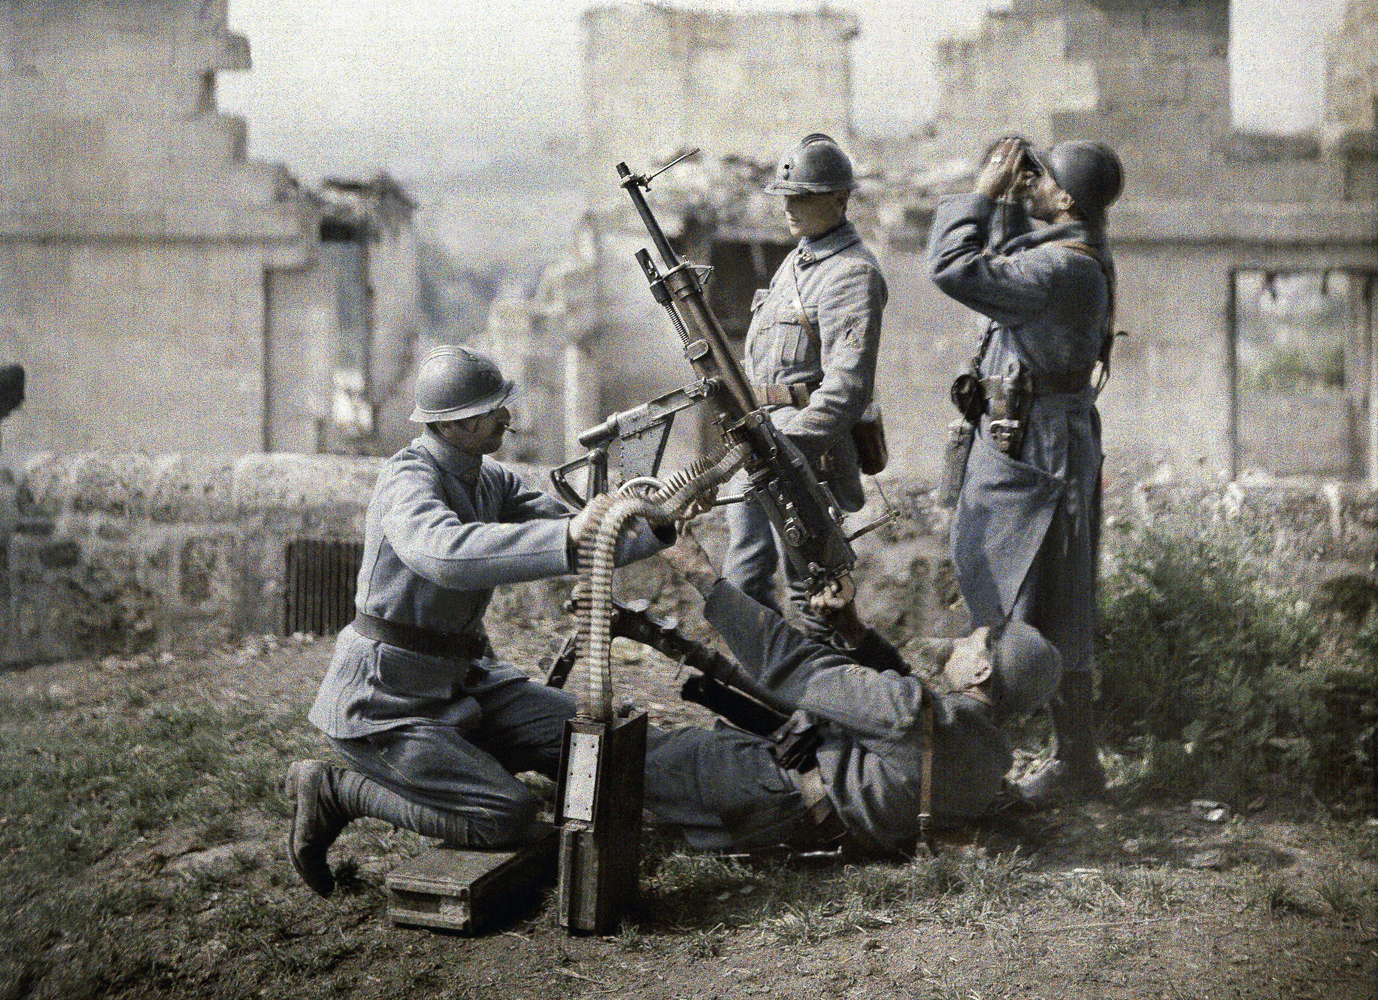 A French section of machine gunners take positions in the ruins during the battle of the Aisne in 1917.